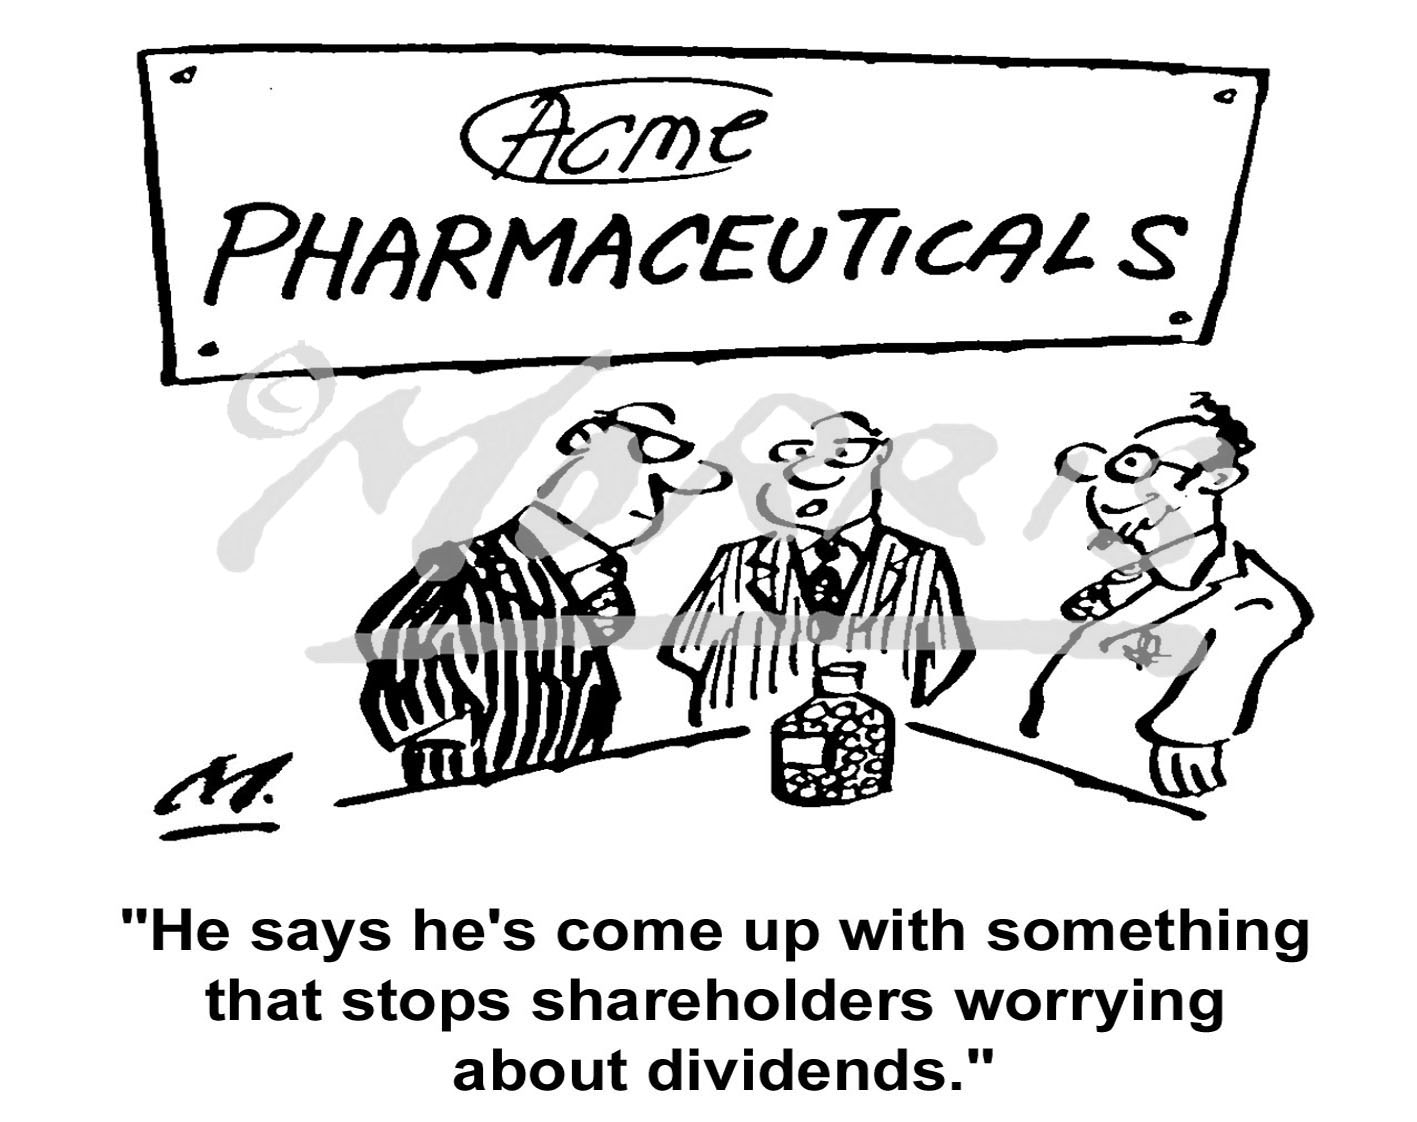 Shareholders cartoon – Ref: 1760bw